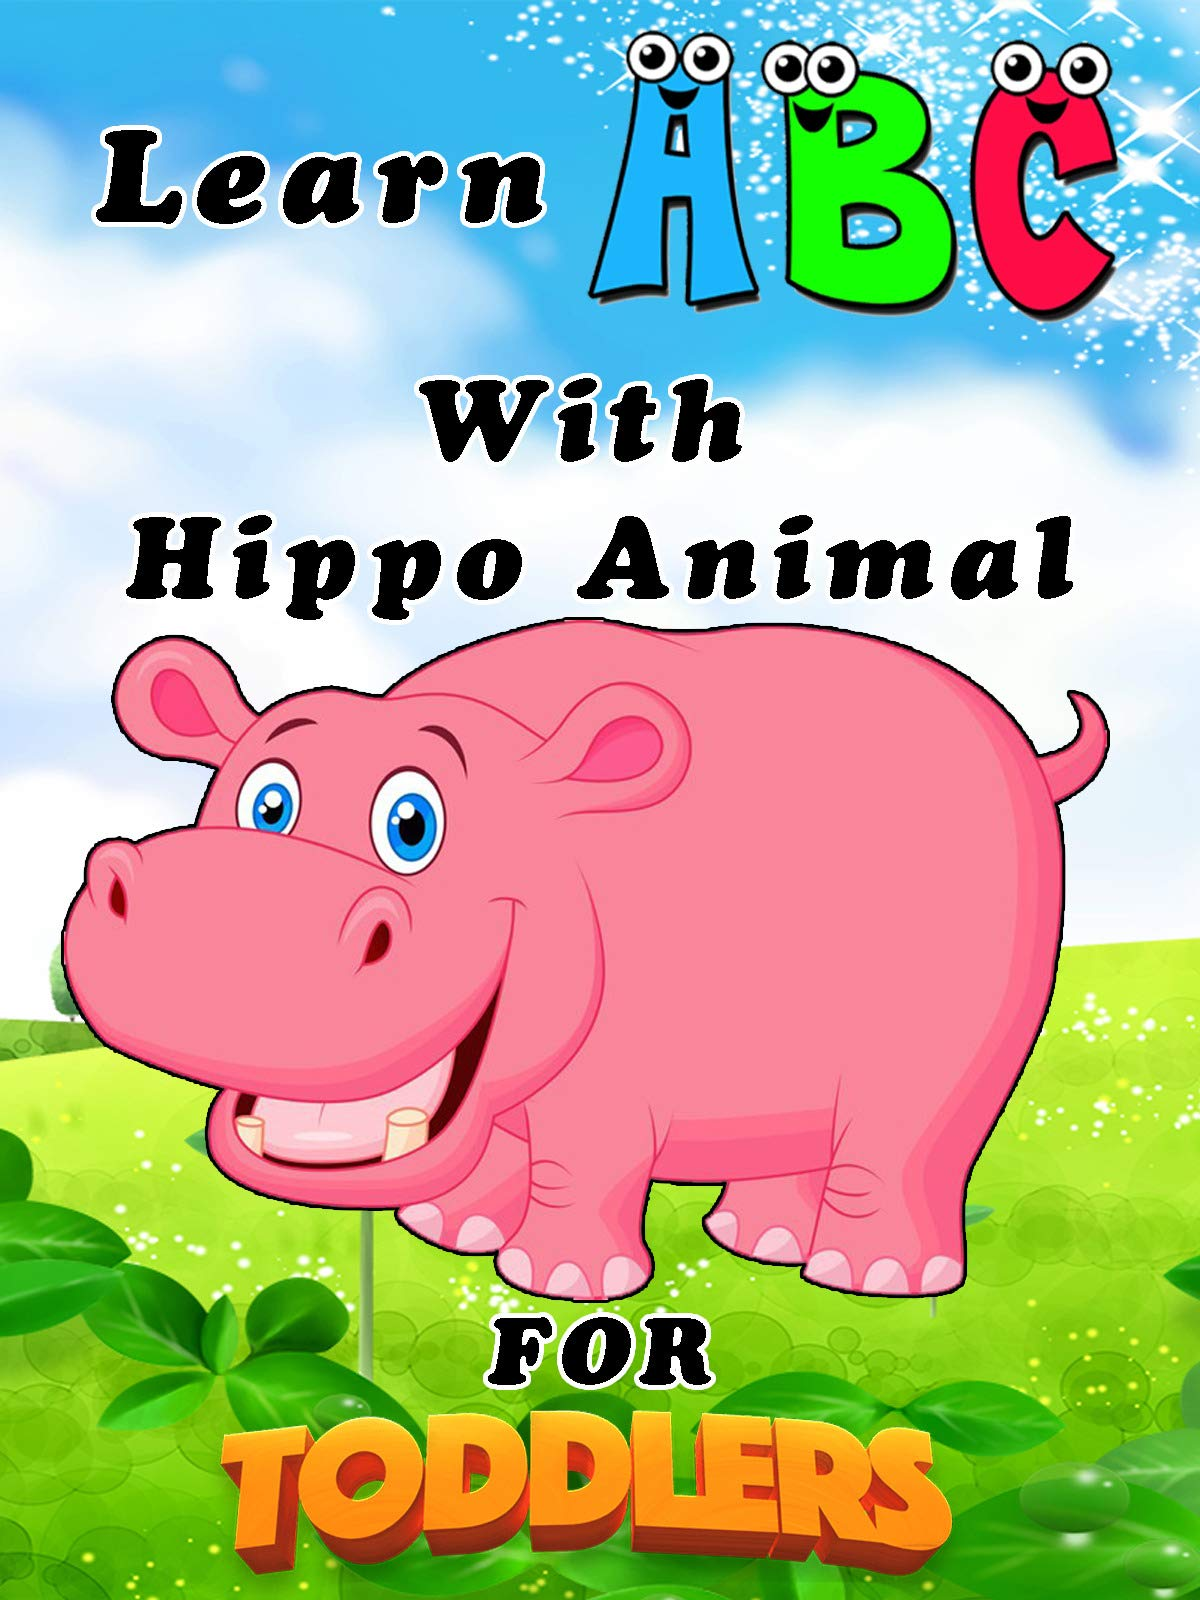 Learn ABC With Hippo Animal For Toddlers